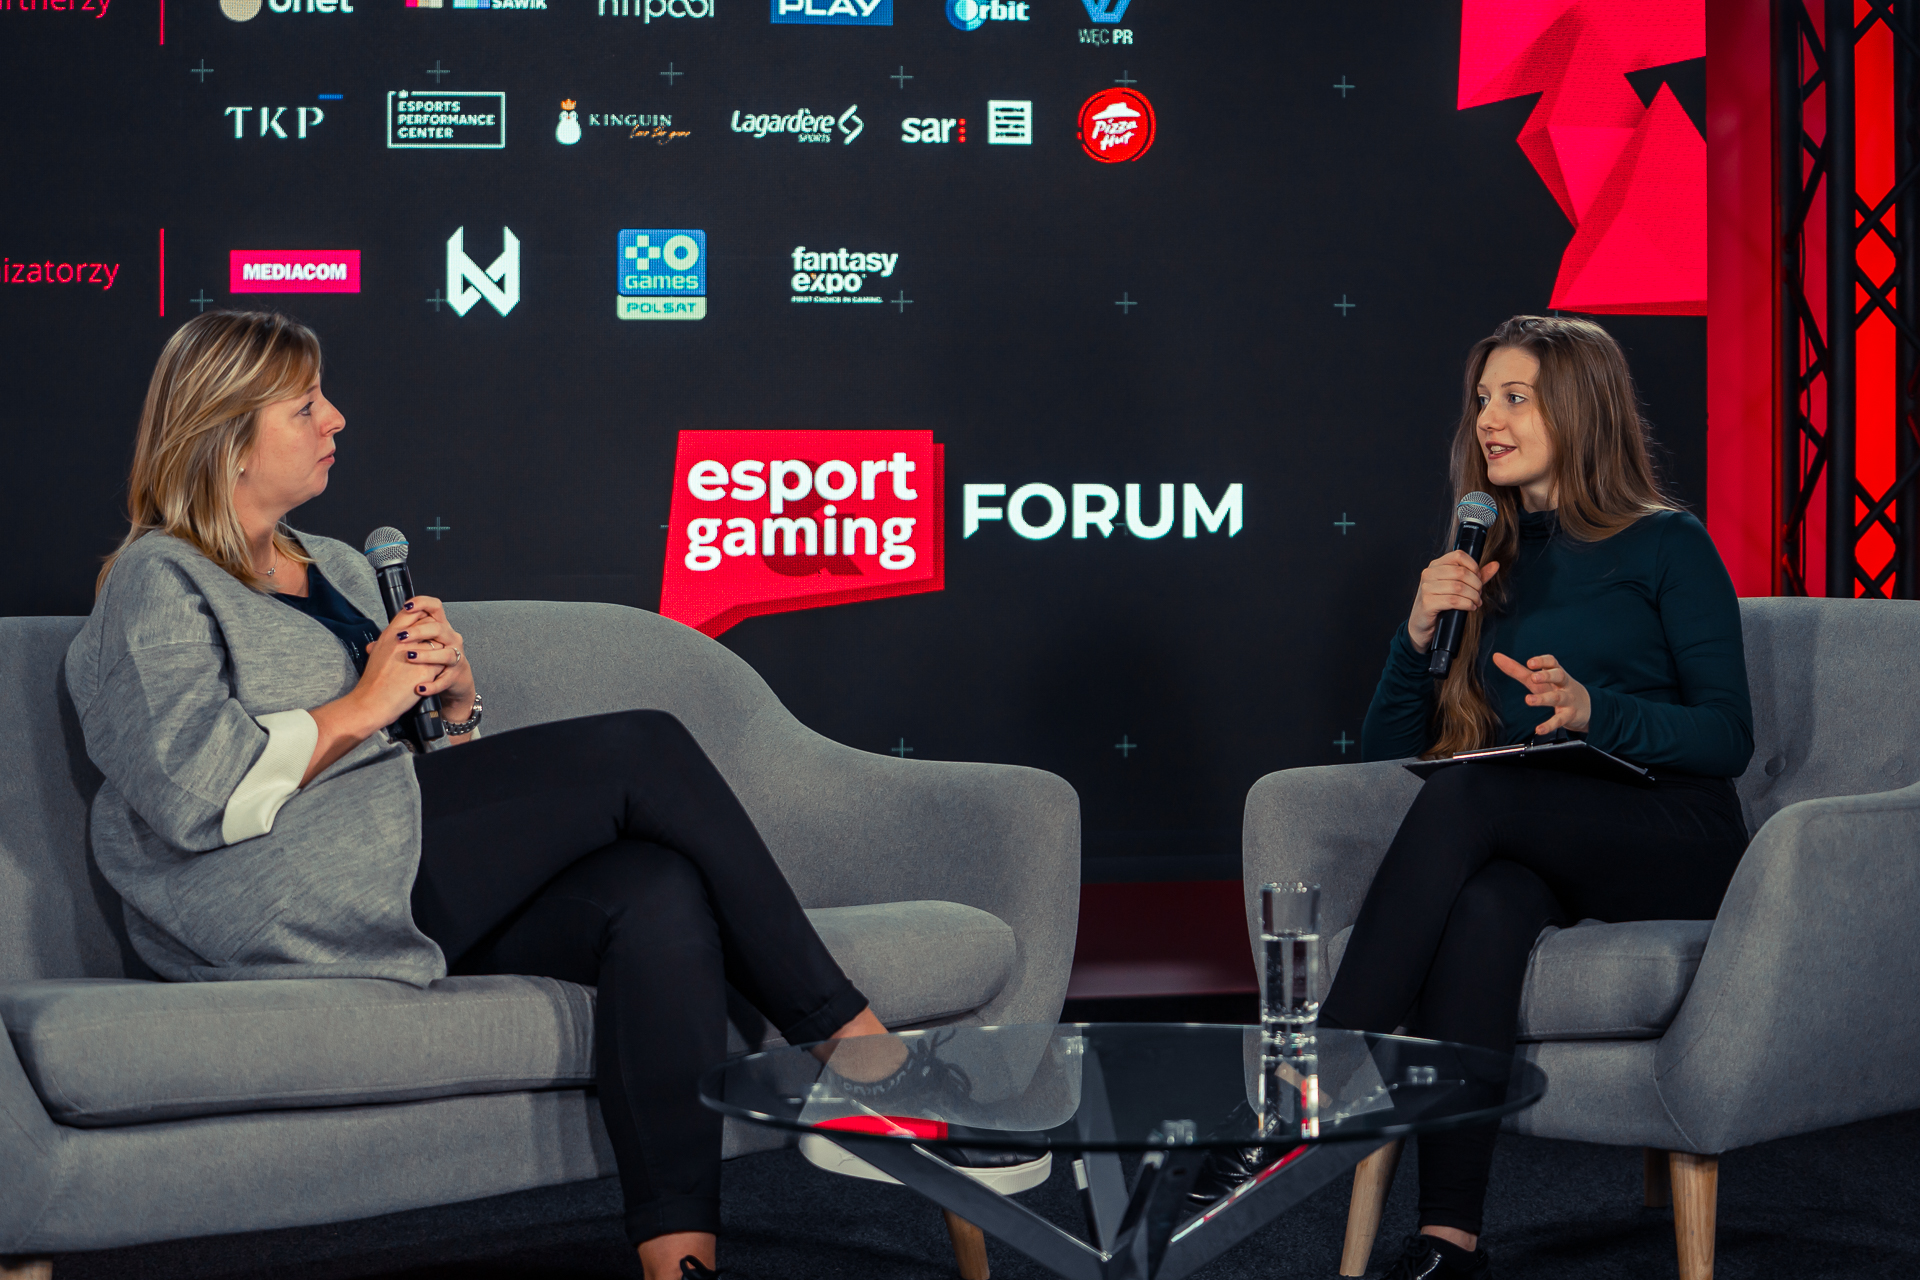 Esport & Gaming Forum (1)